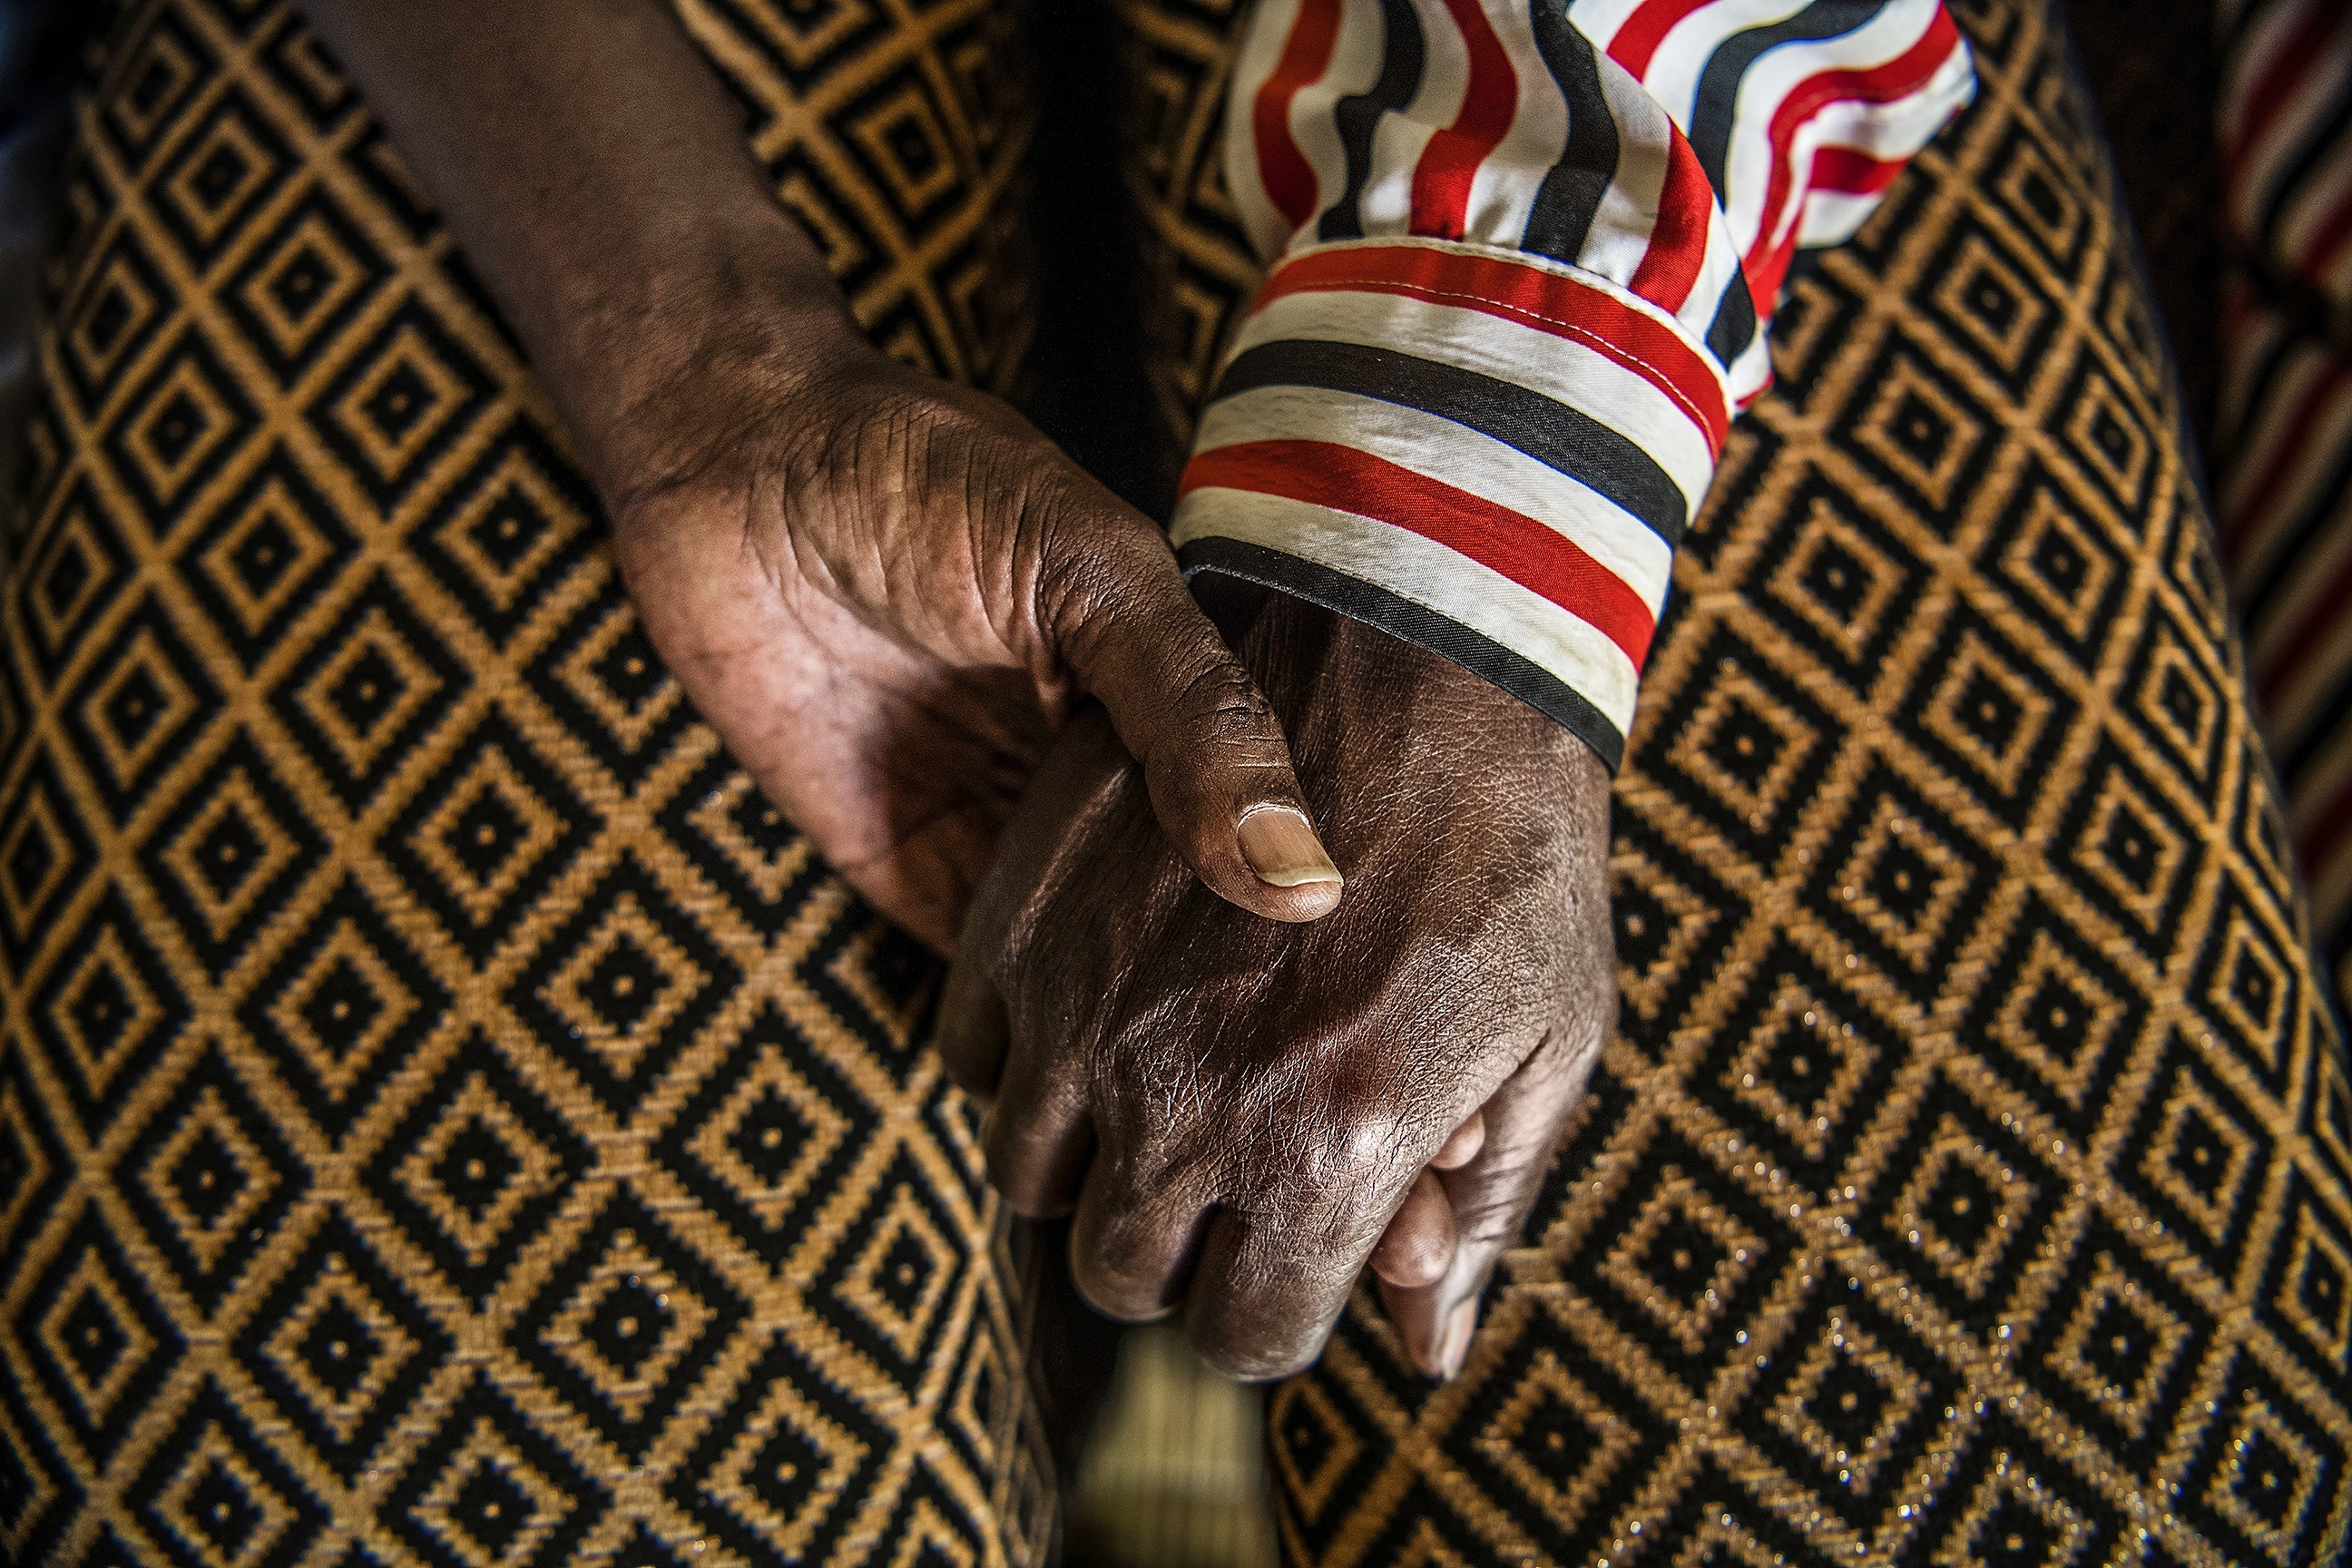 The hands of Aloys Mutiribambe in Mbyo reconciliation village